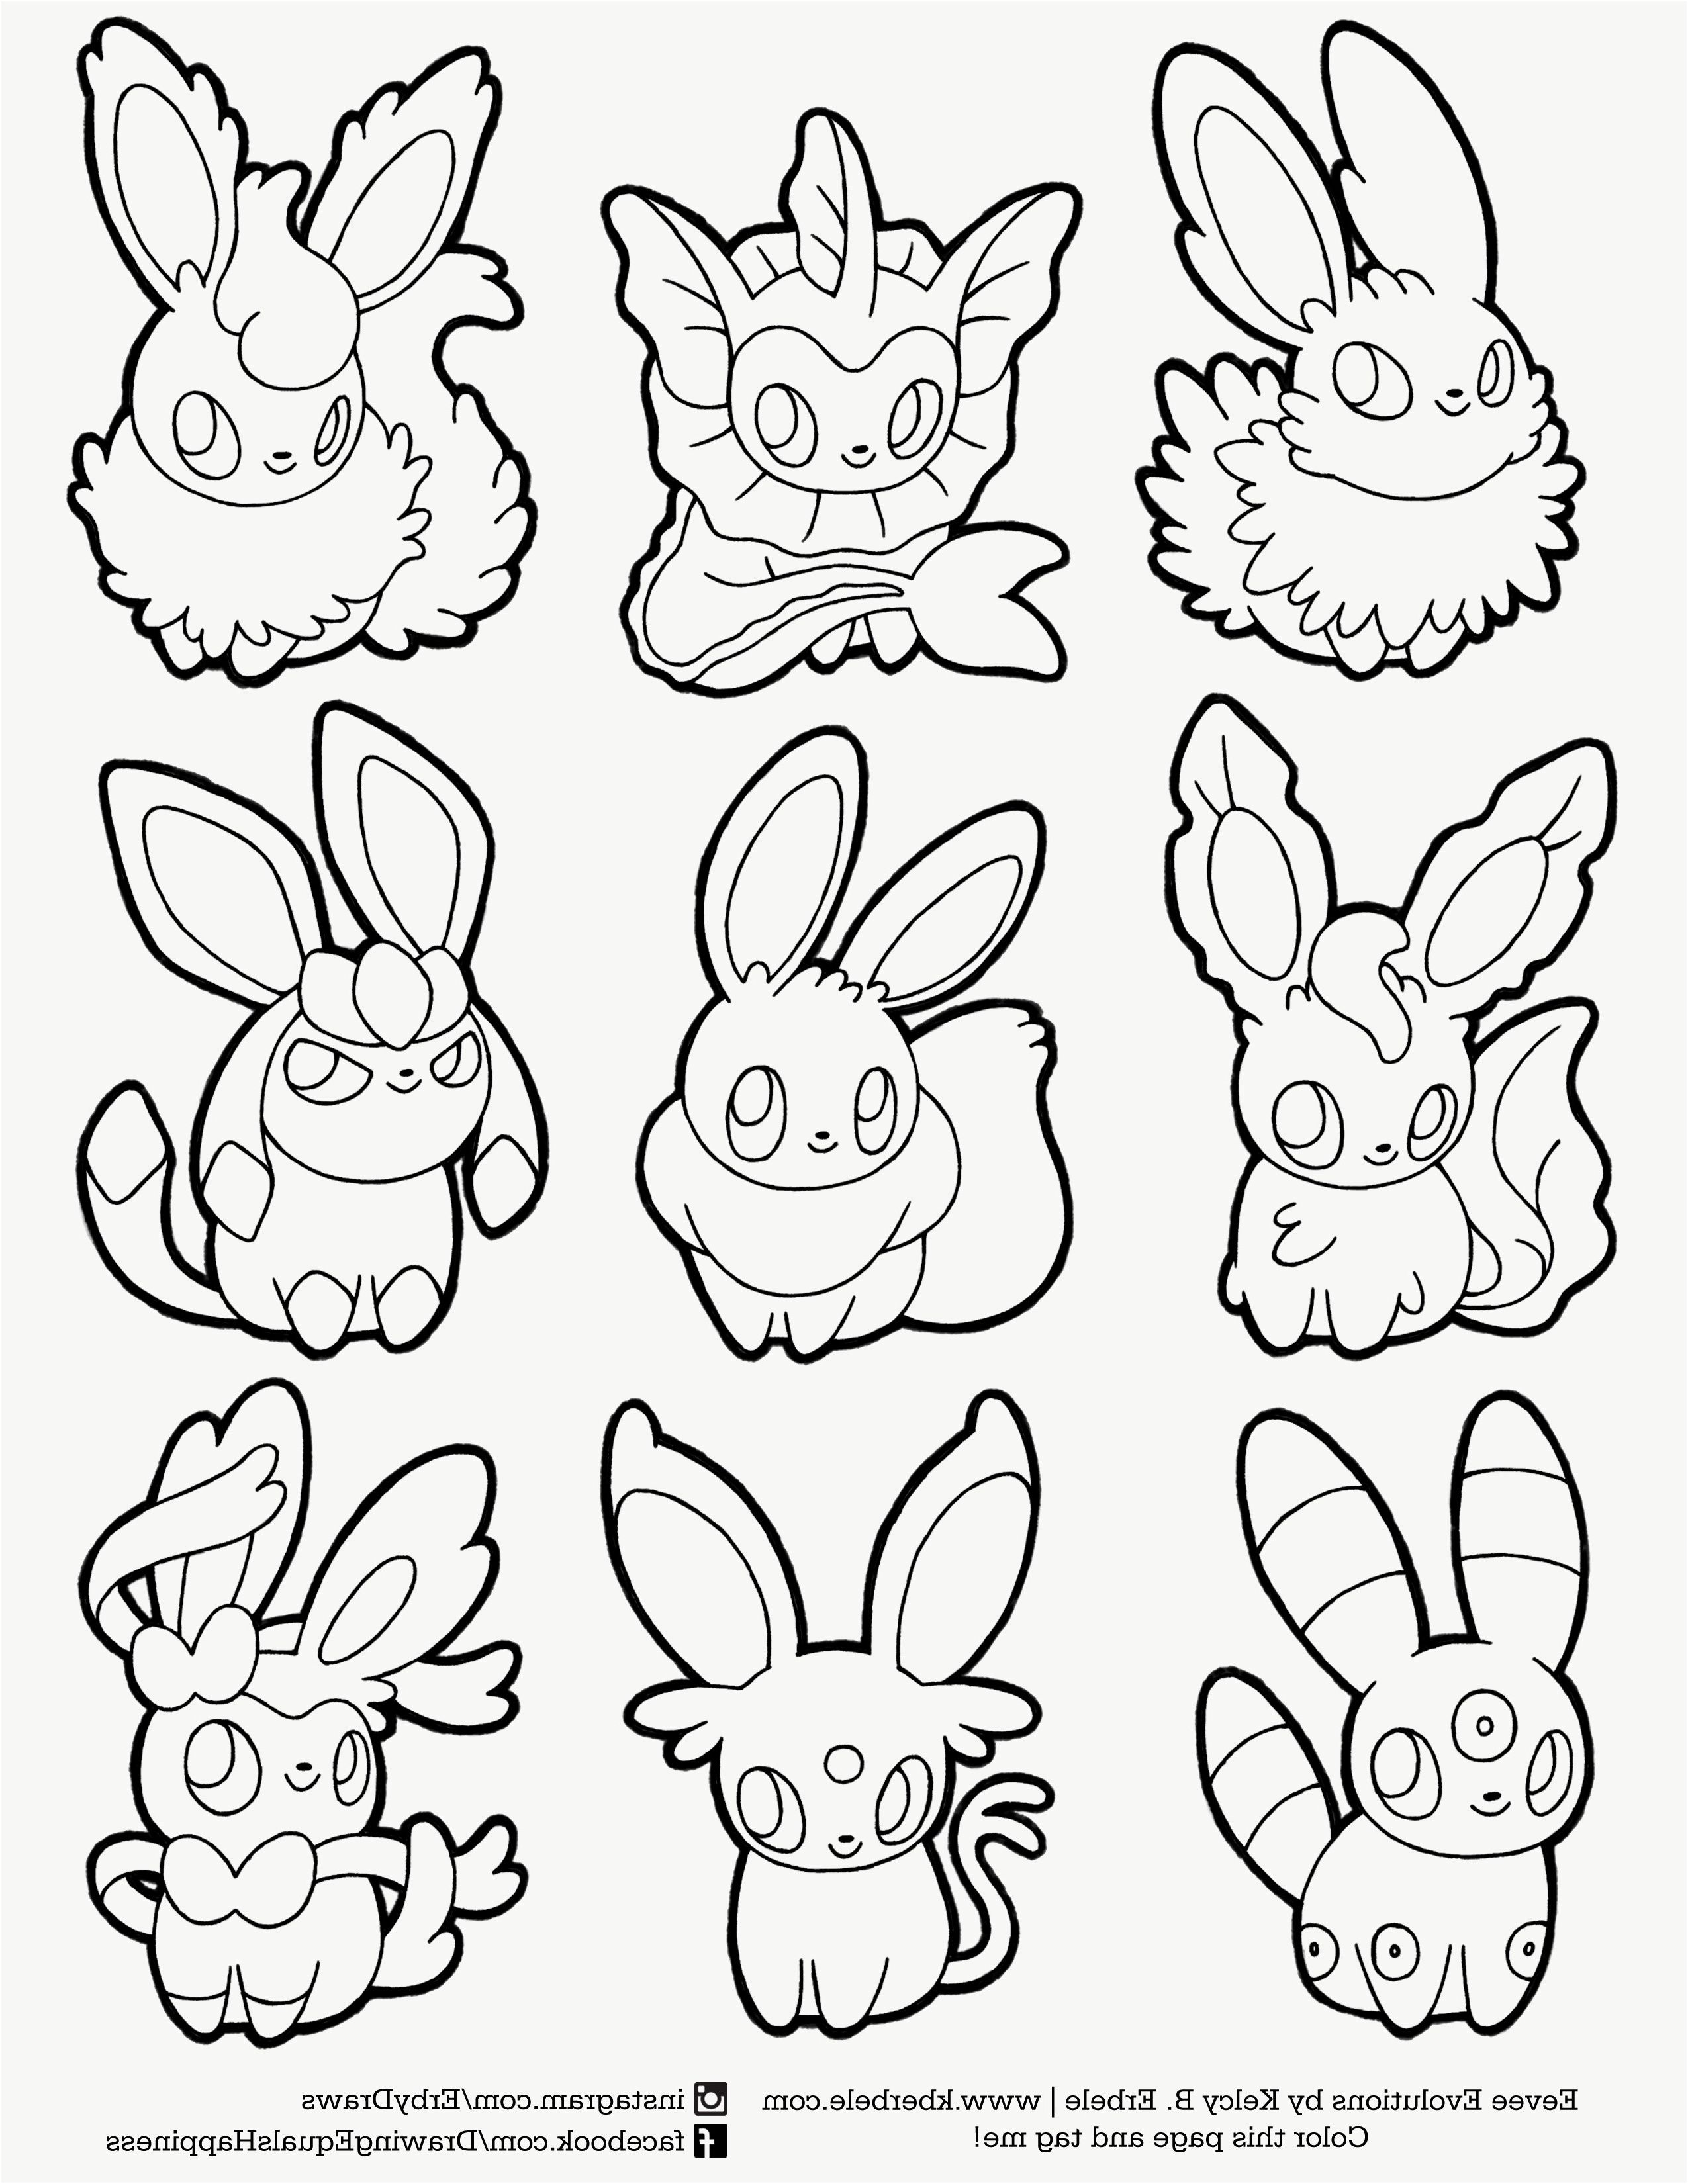 10 Tendance Lune Coloriage Pictures Pokemon Coloring Sheets Pokemon Coloring Pages Pokemon Coloring